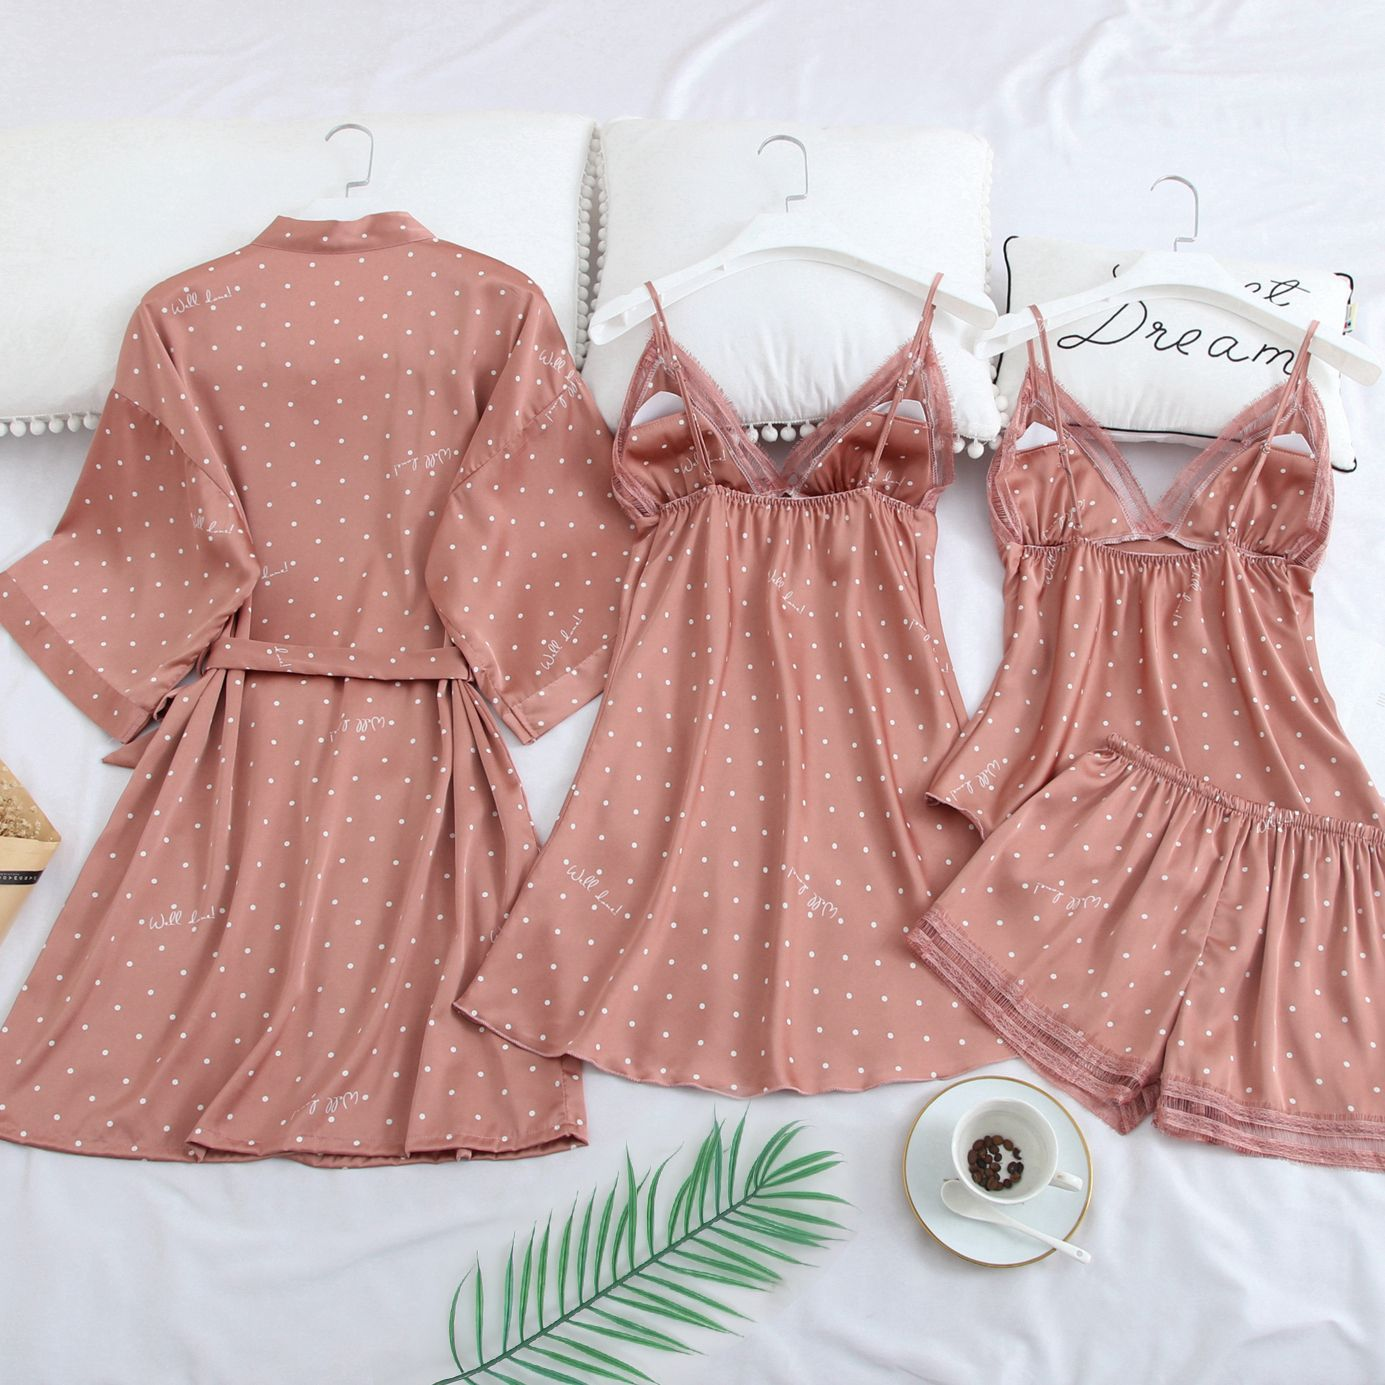 Pink Print Dot Wedding Robe Set Sleepwear Casual Intimate Lingerie Nightgown Nightdress Soft Homewear Home Clothing Kimono Gown